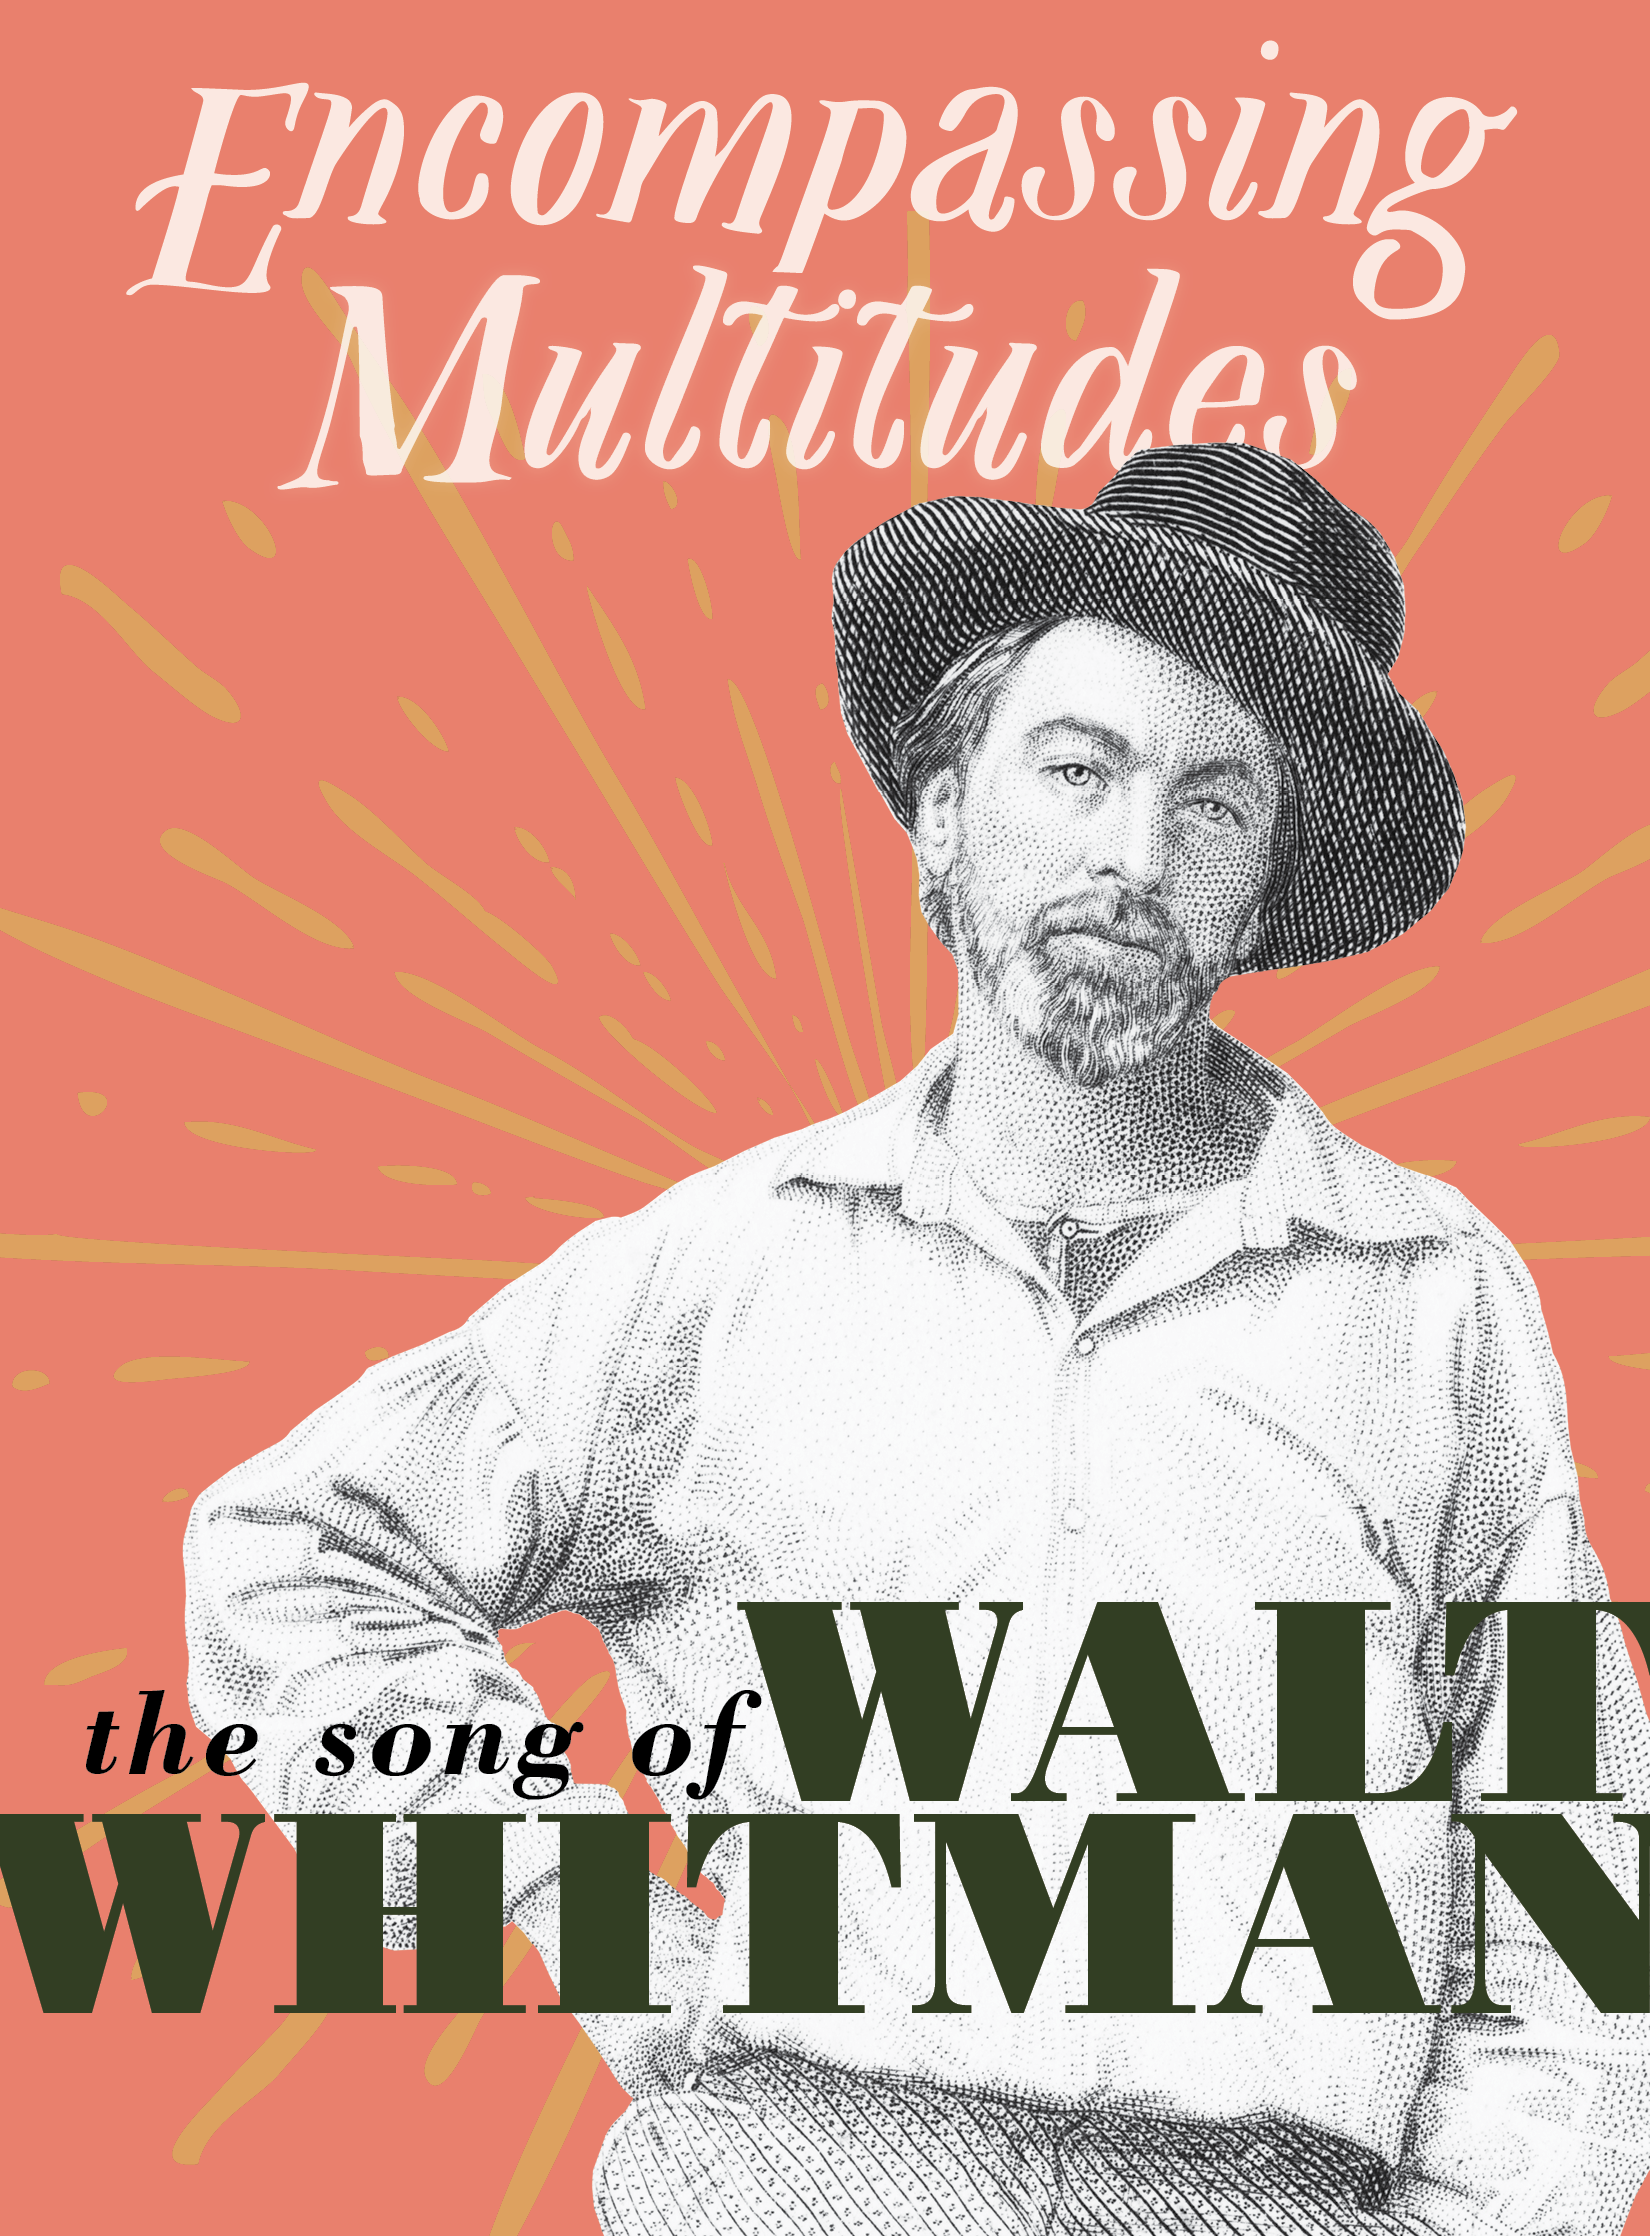 Exhibition Opening - Encompassing Multitudes: The Song of Walt Whitman